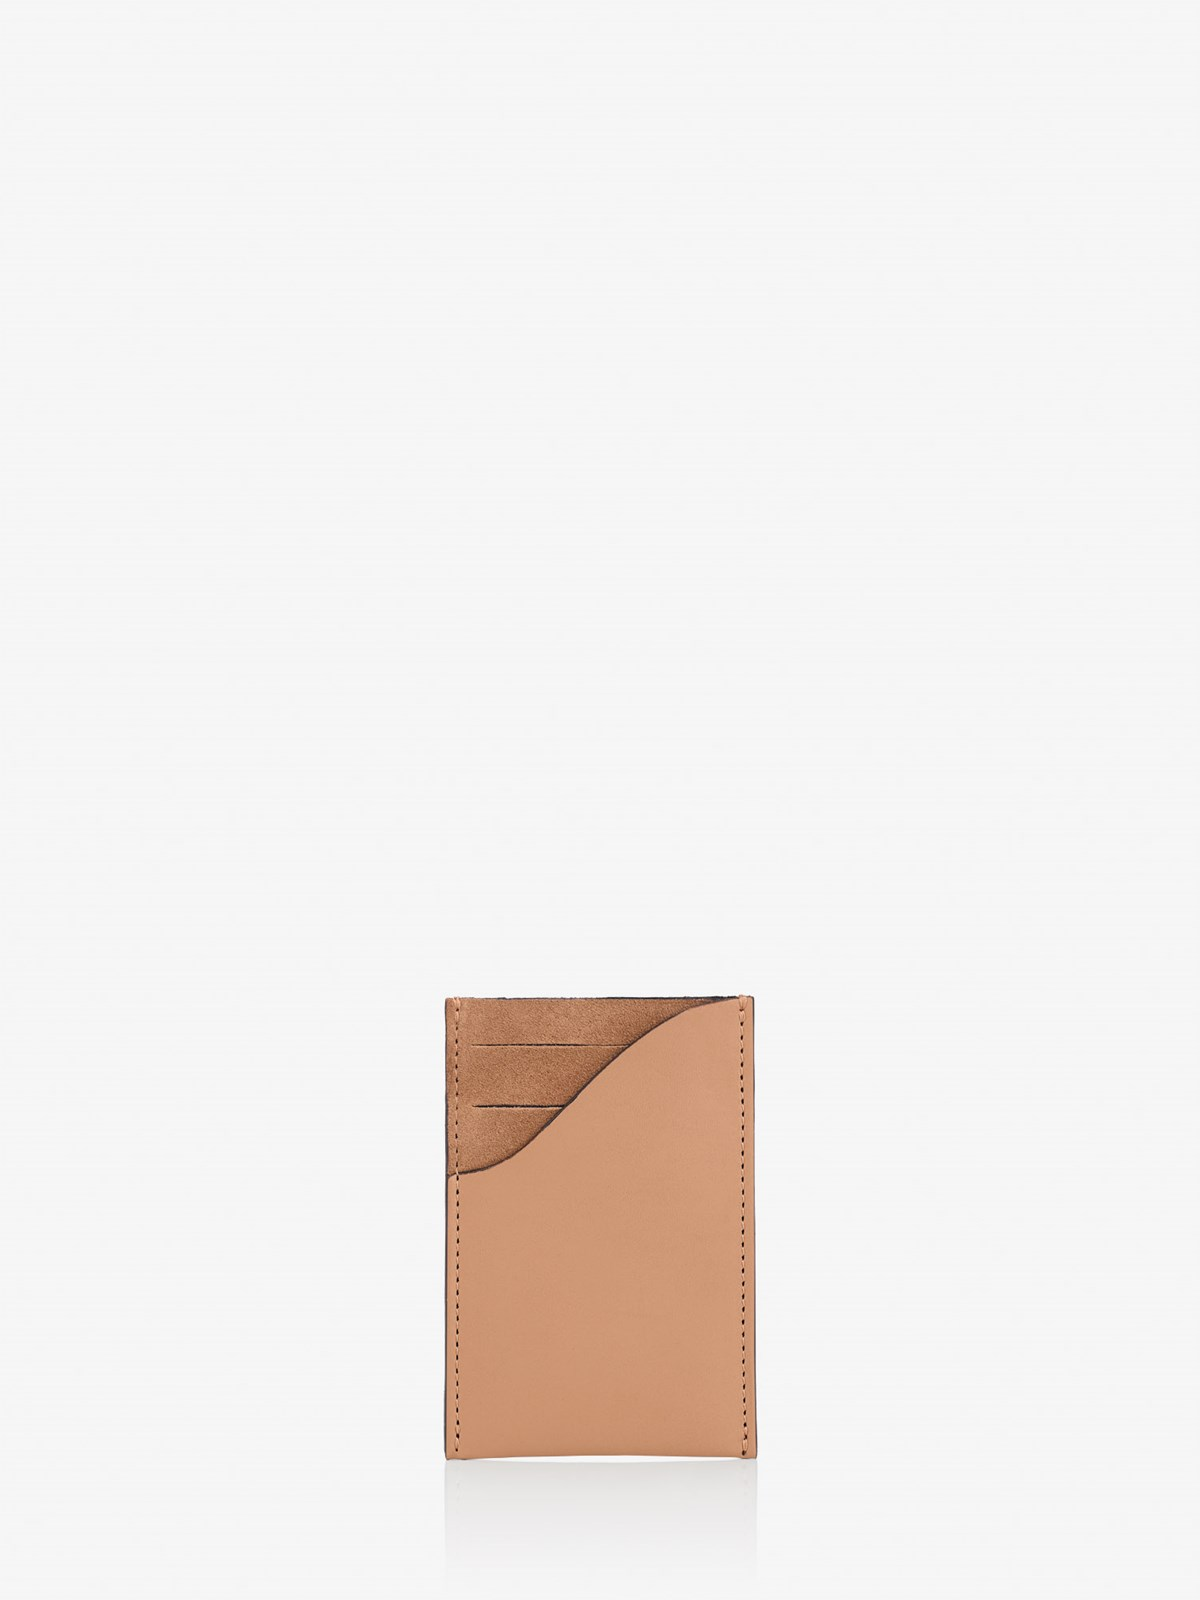 Elba Almond Card holder